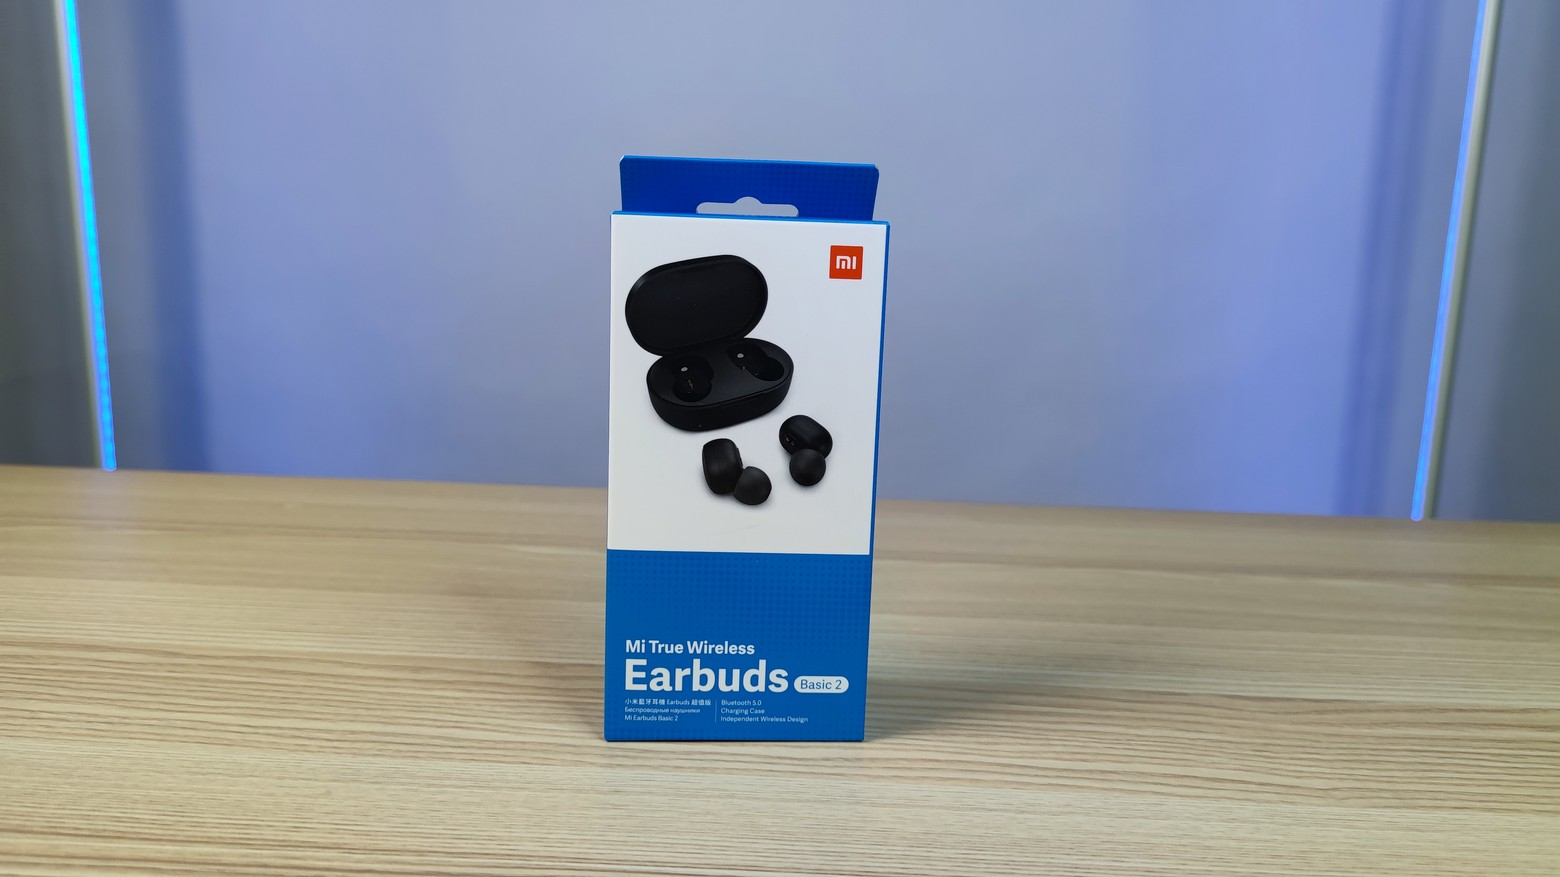 Mi True Wireless Earbuds Basic 2 – How To Troubleshoot and How to Verify Product Authenticity